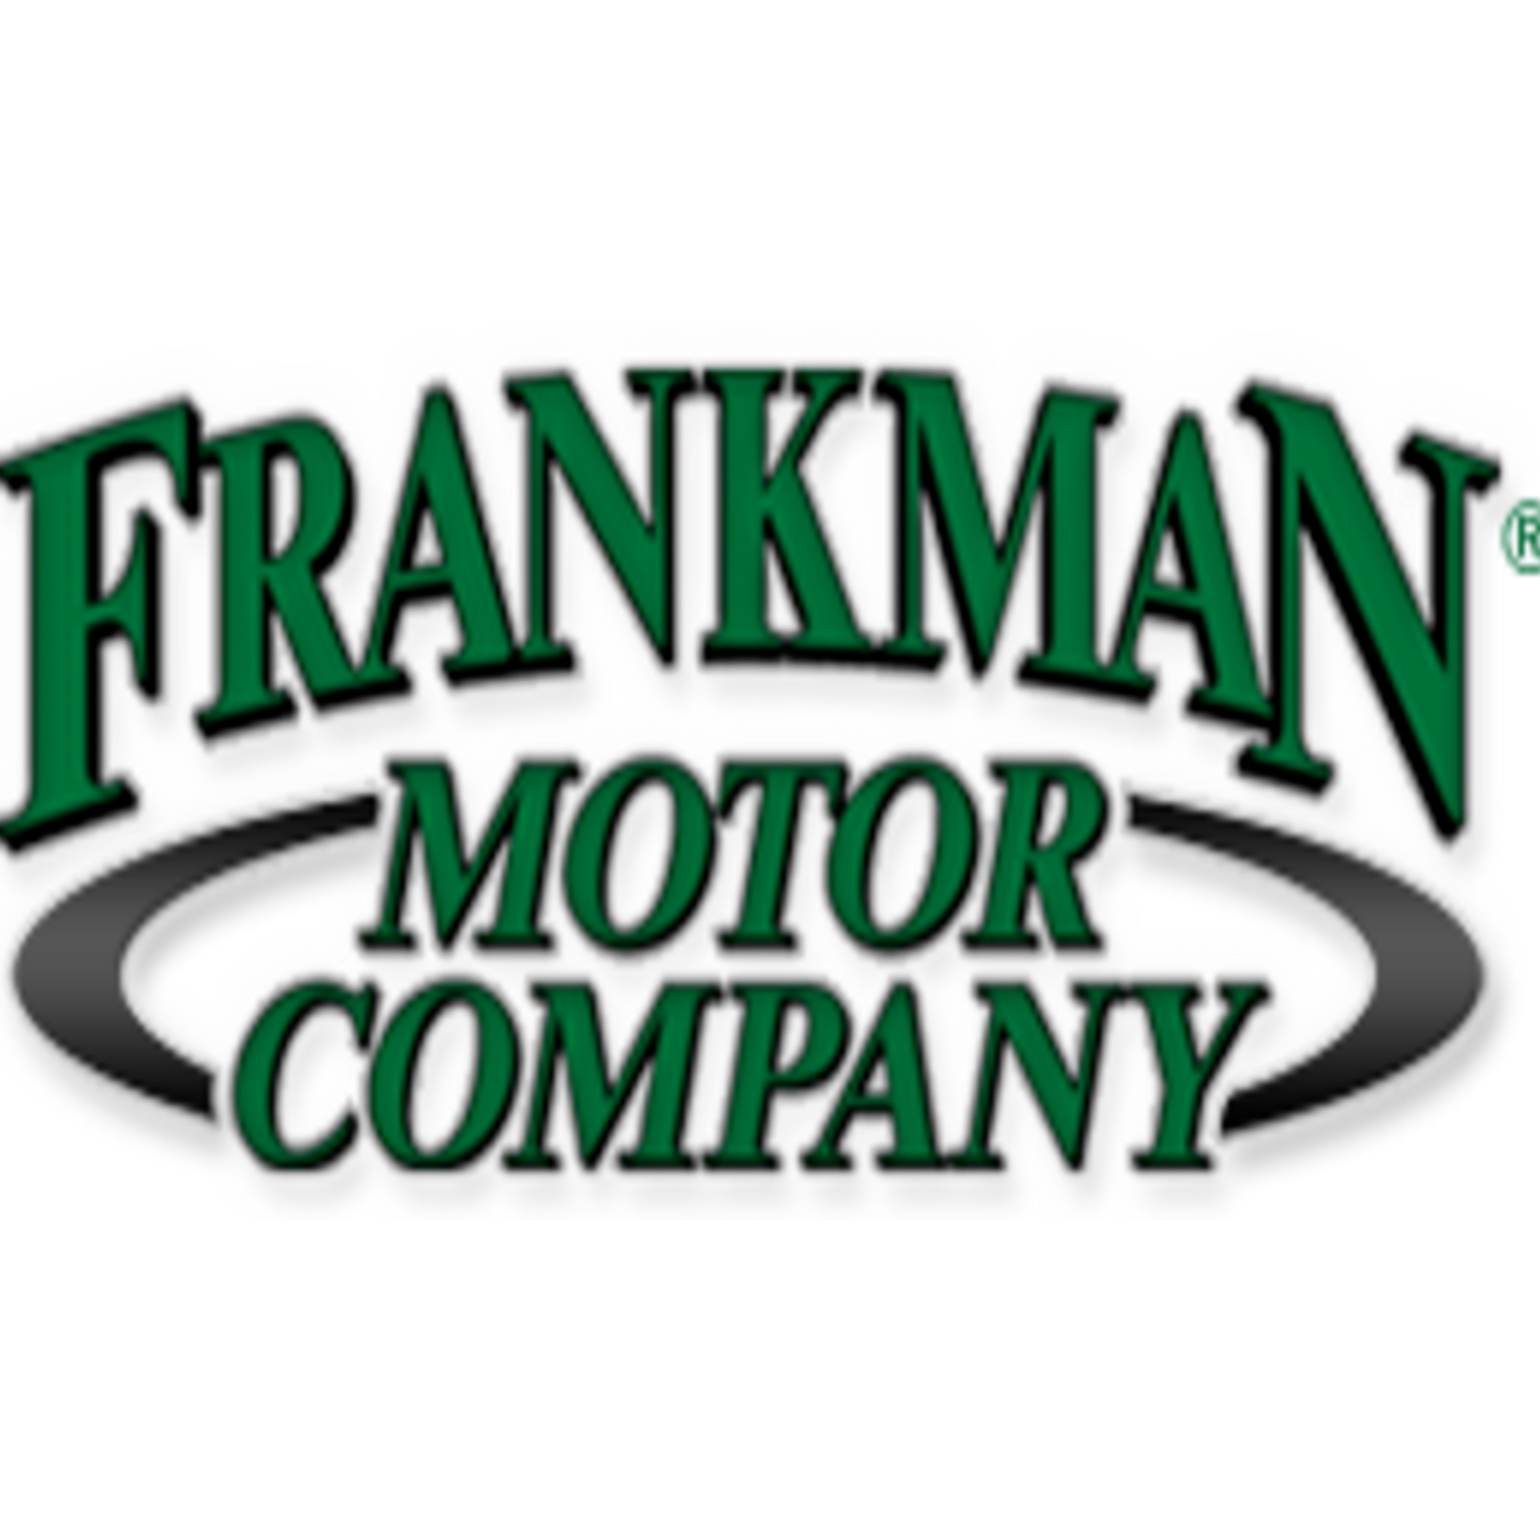 Frankman Motor Company Inc Sioux Falls South Dakota Sd